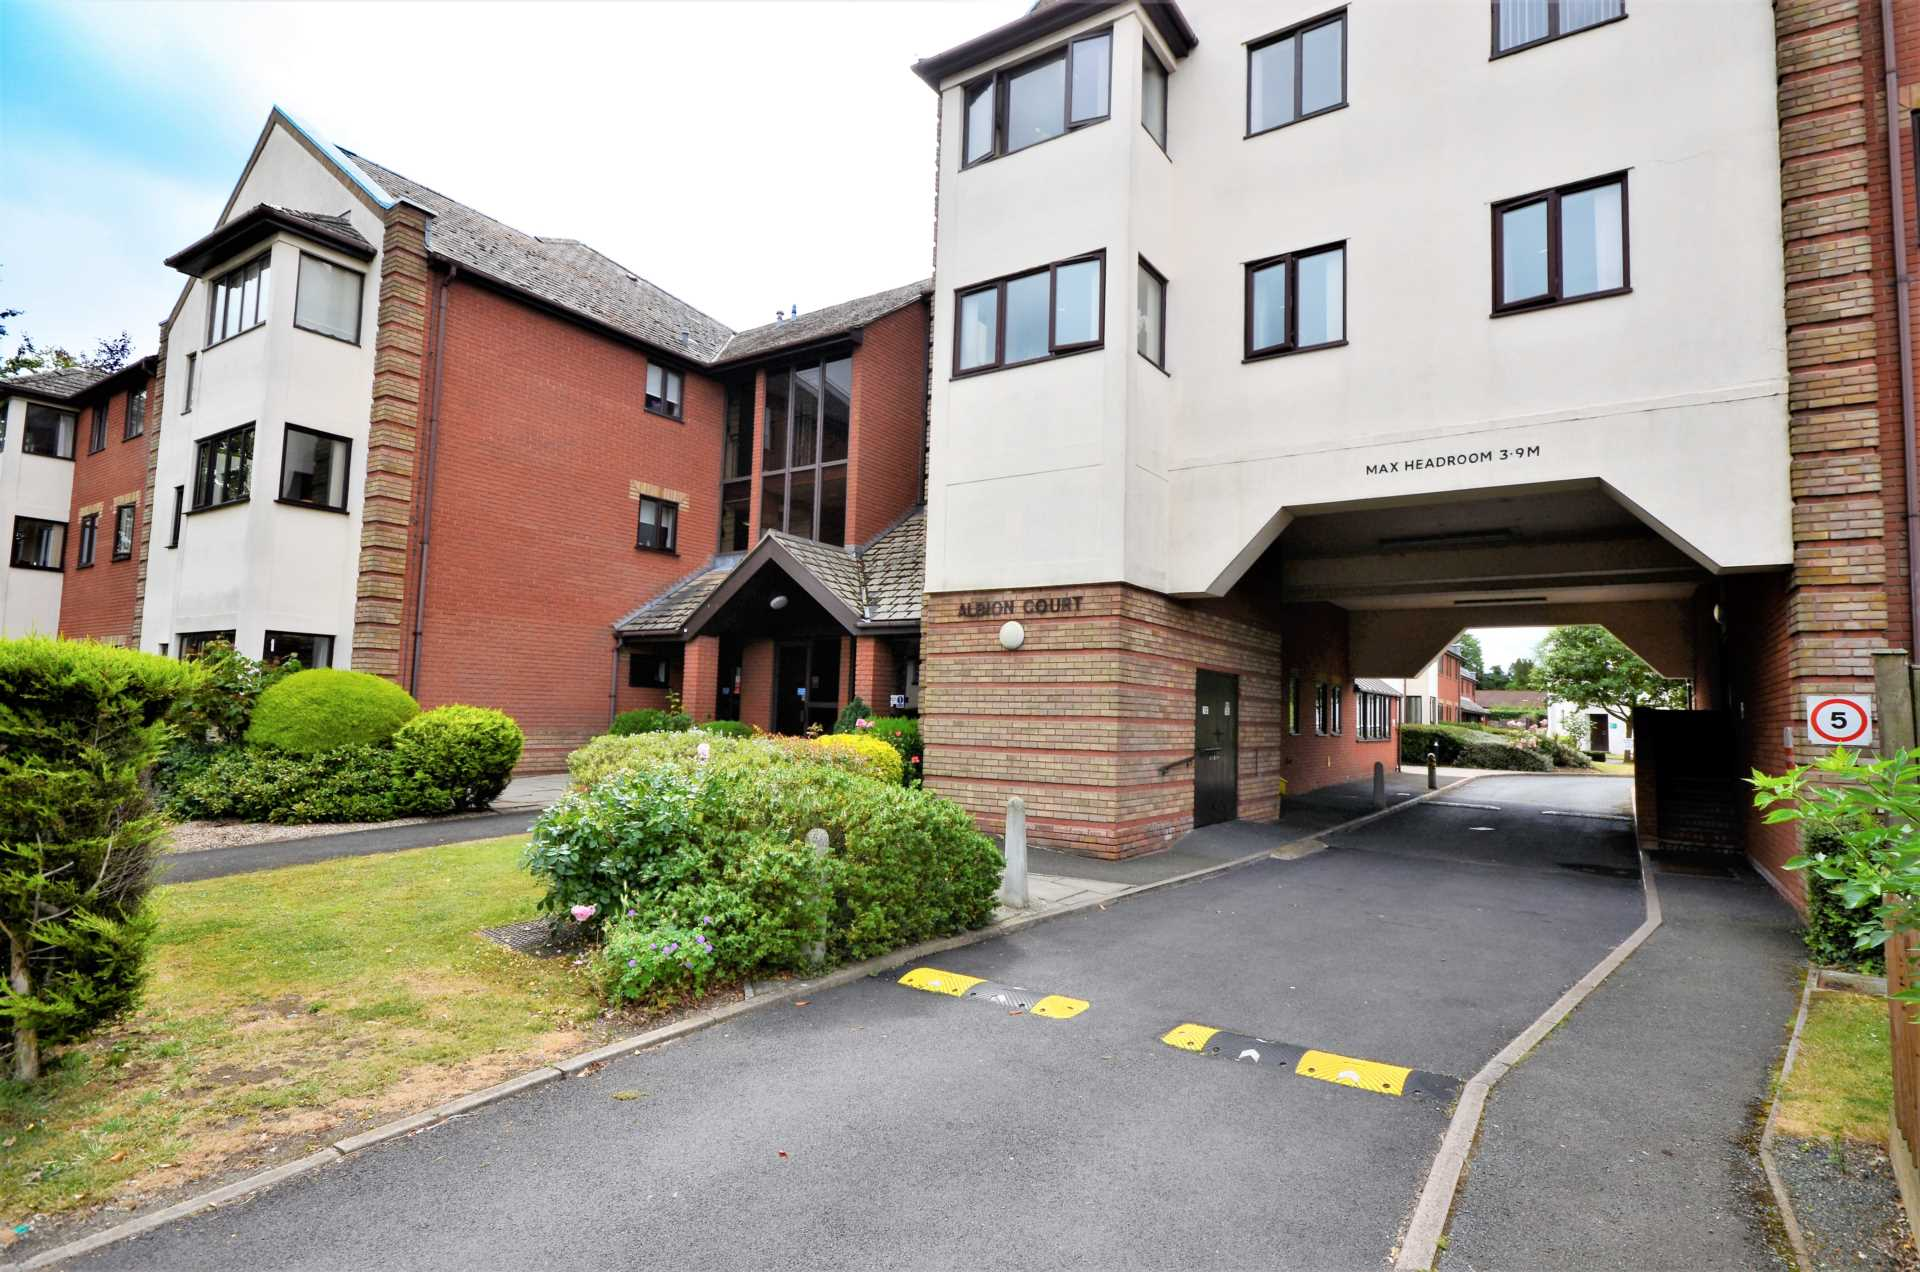 Albion Court, Billericay, Image 2